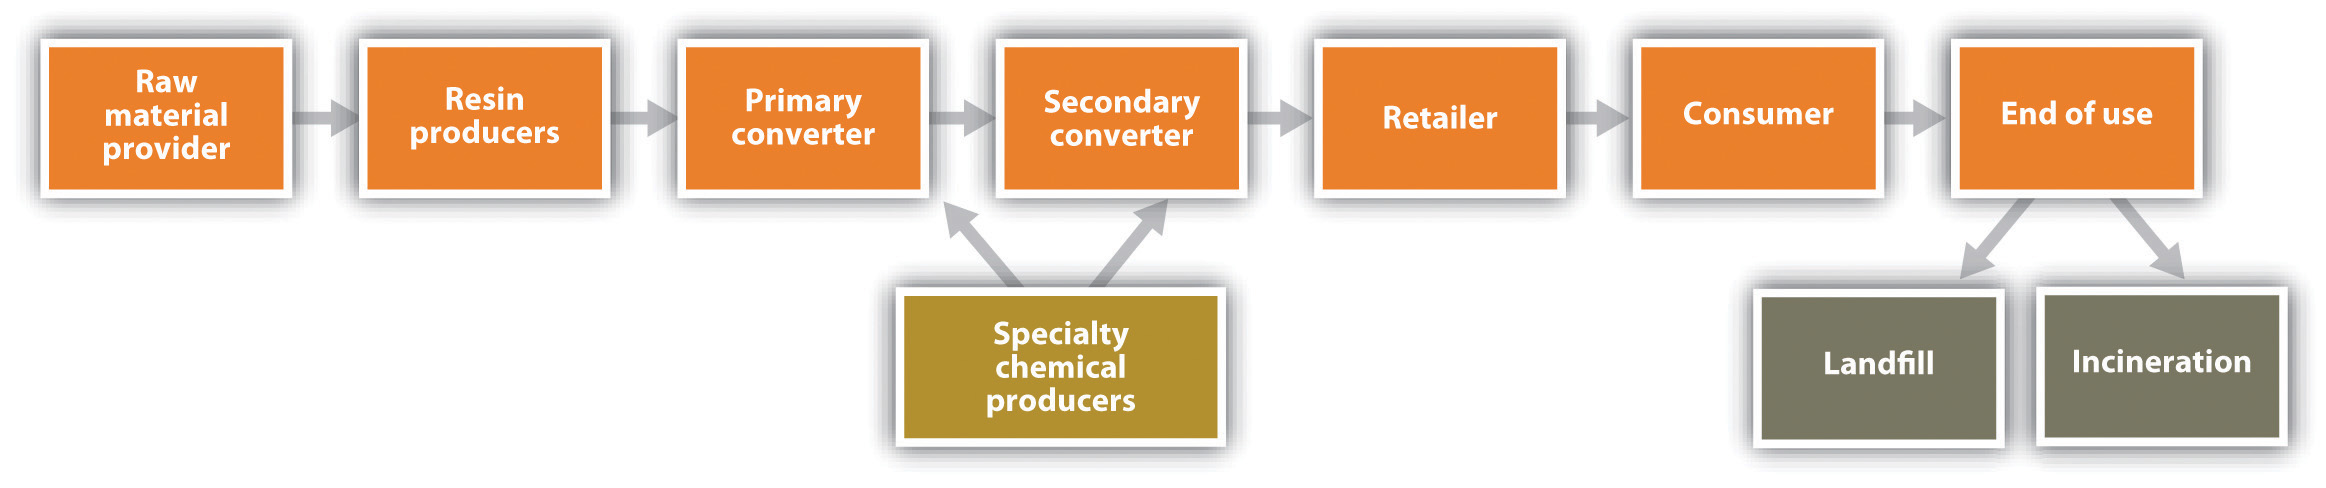 integrated essay value chain analysis